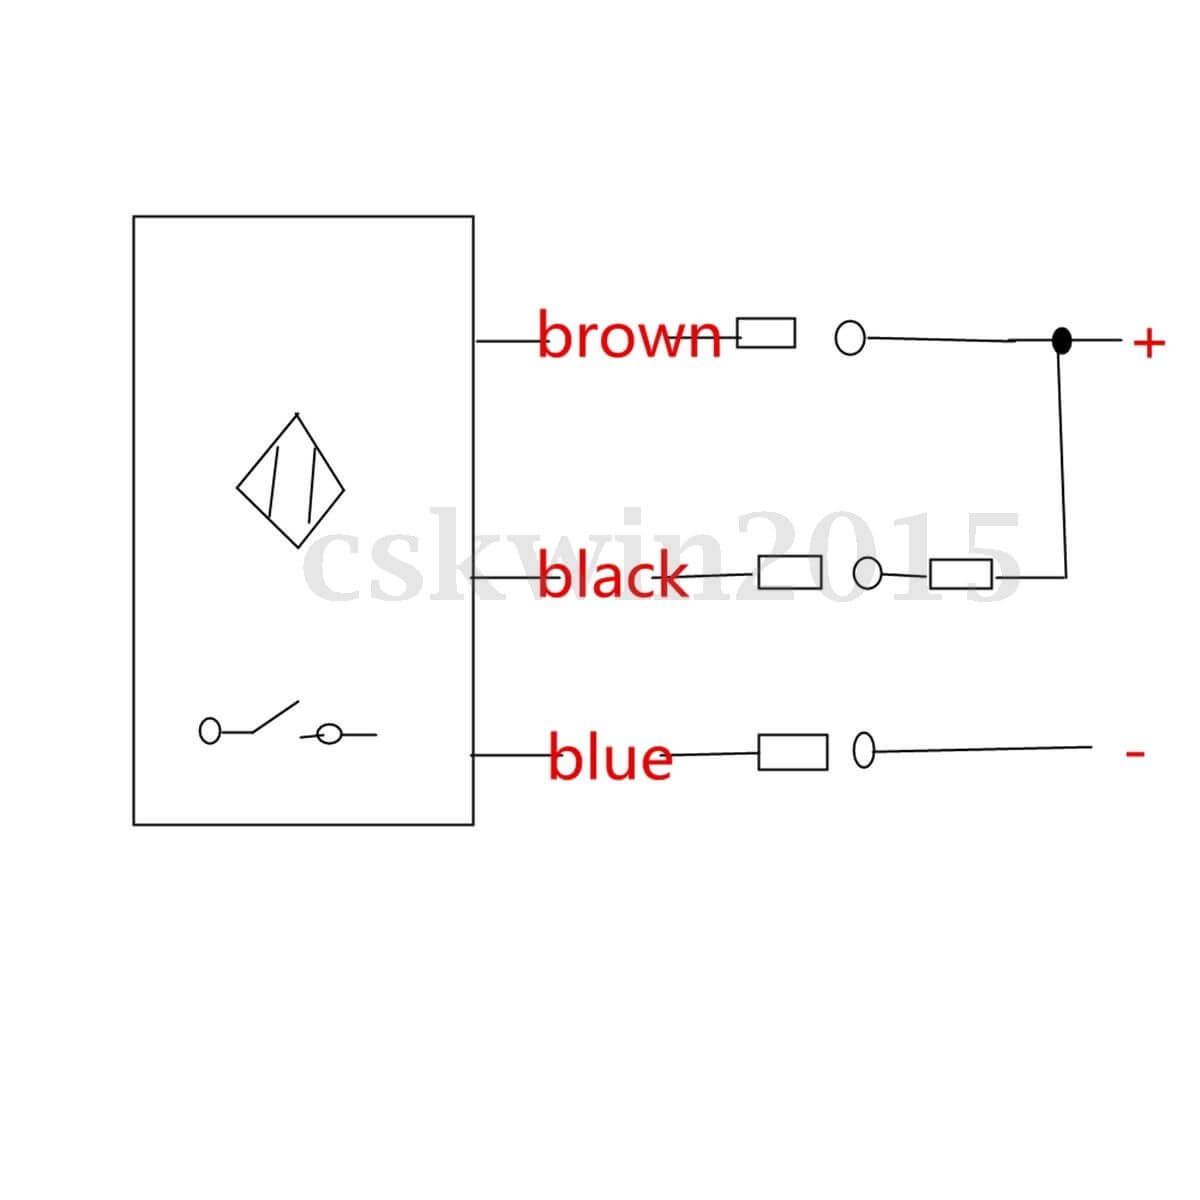 hight resolution of schematic for hall proximity switch from ebay it s like a baby is drawing it in practice for laymen this diagram inappropriate